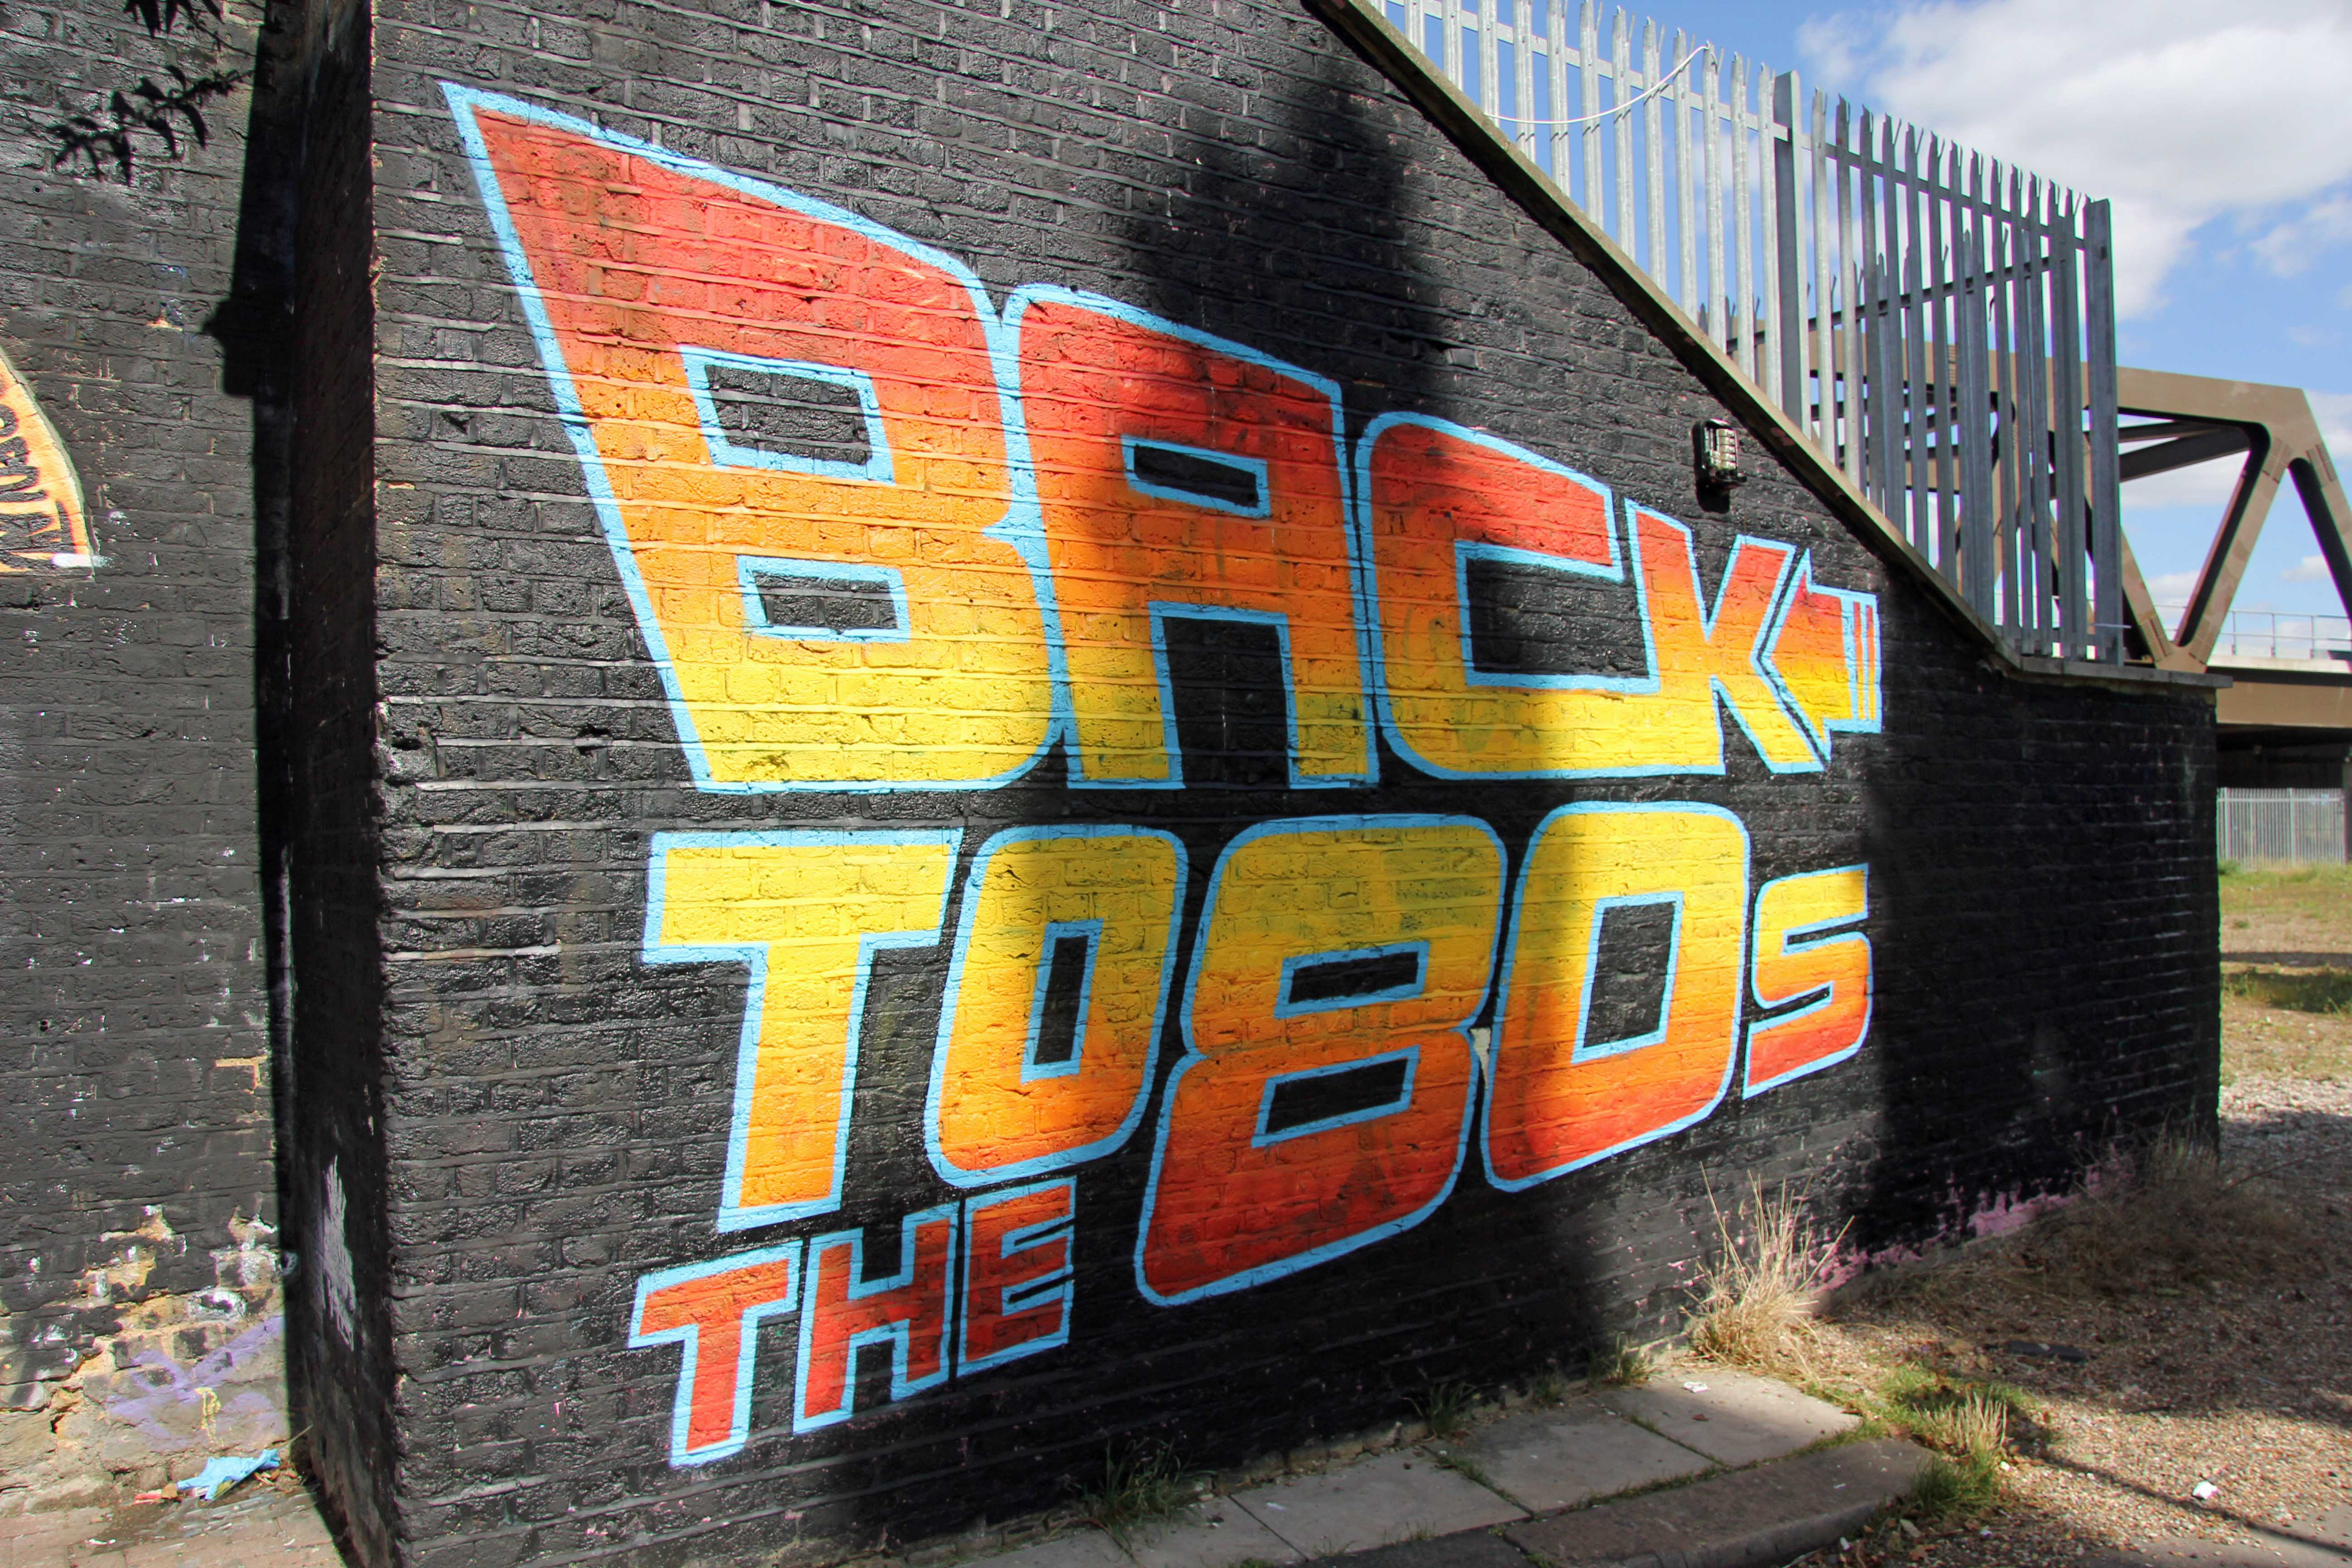 Back to the 80s street art by unknown artist in east london